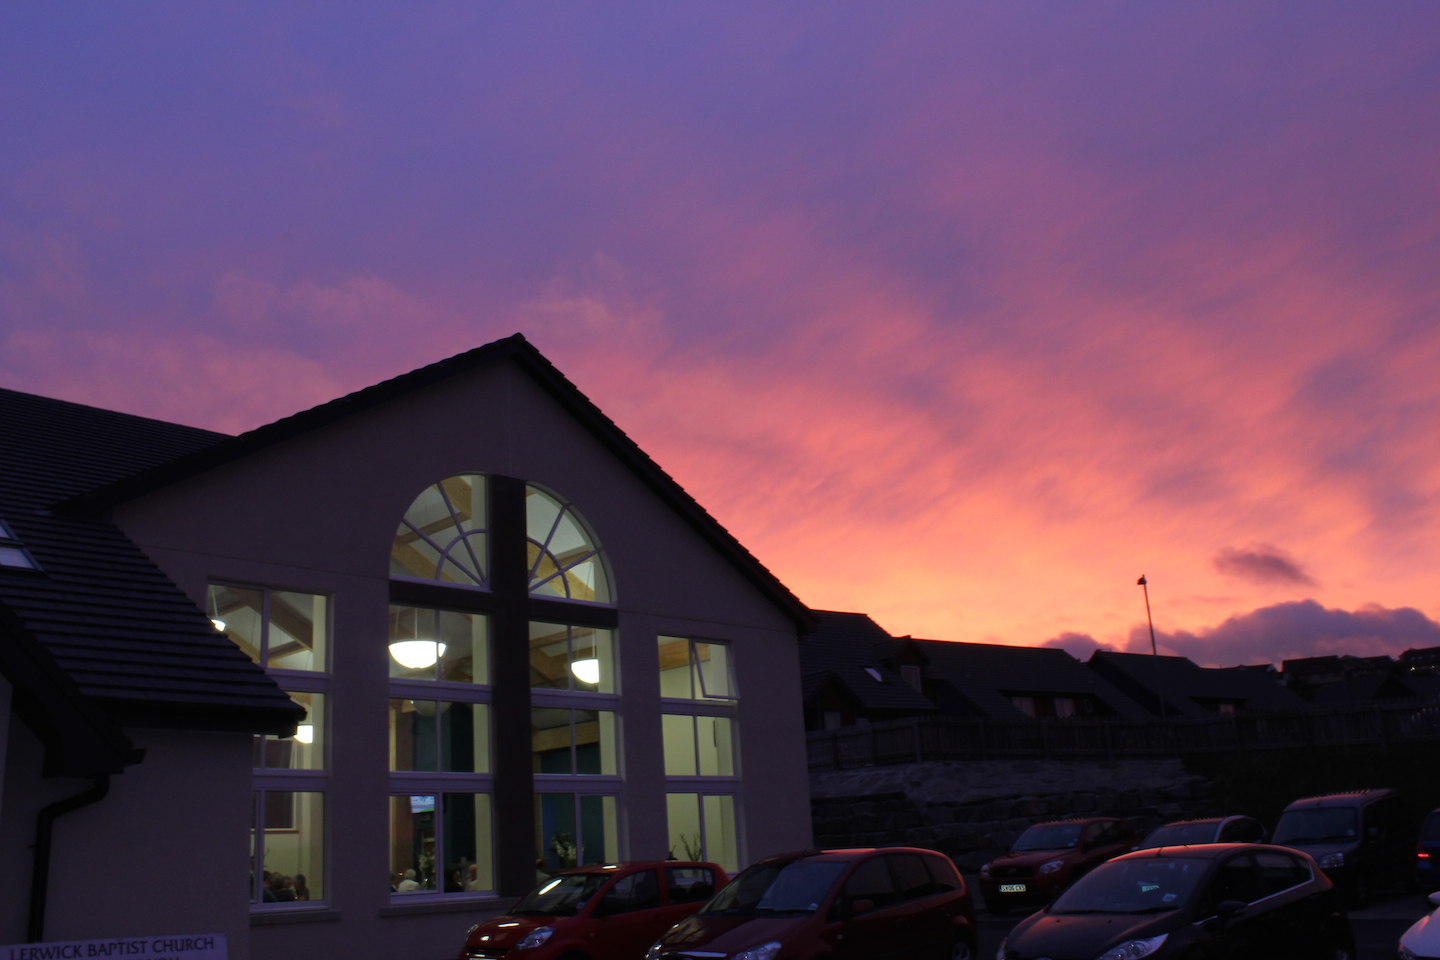 lerwick-baptist-church-sunset